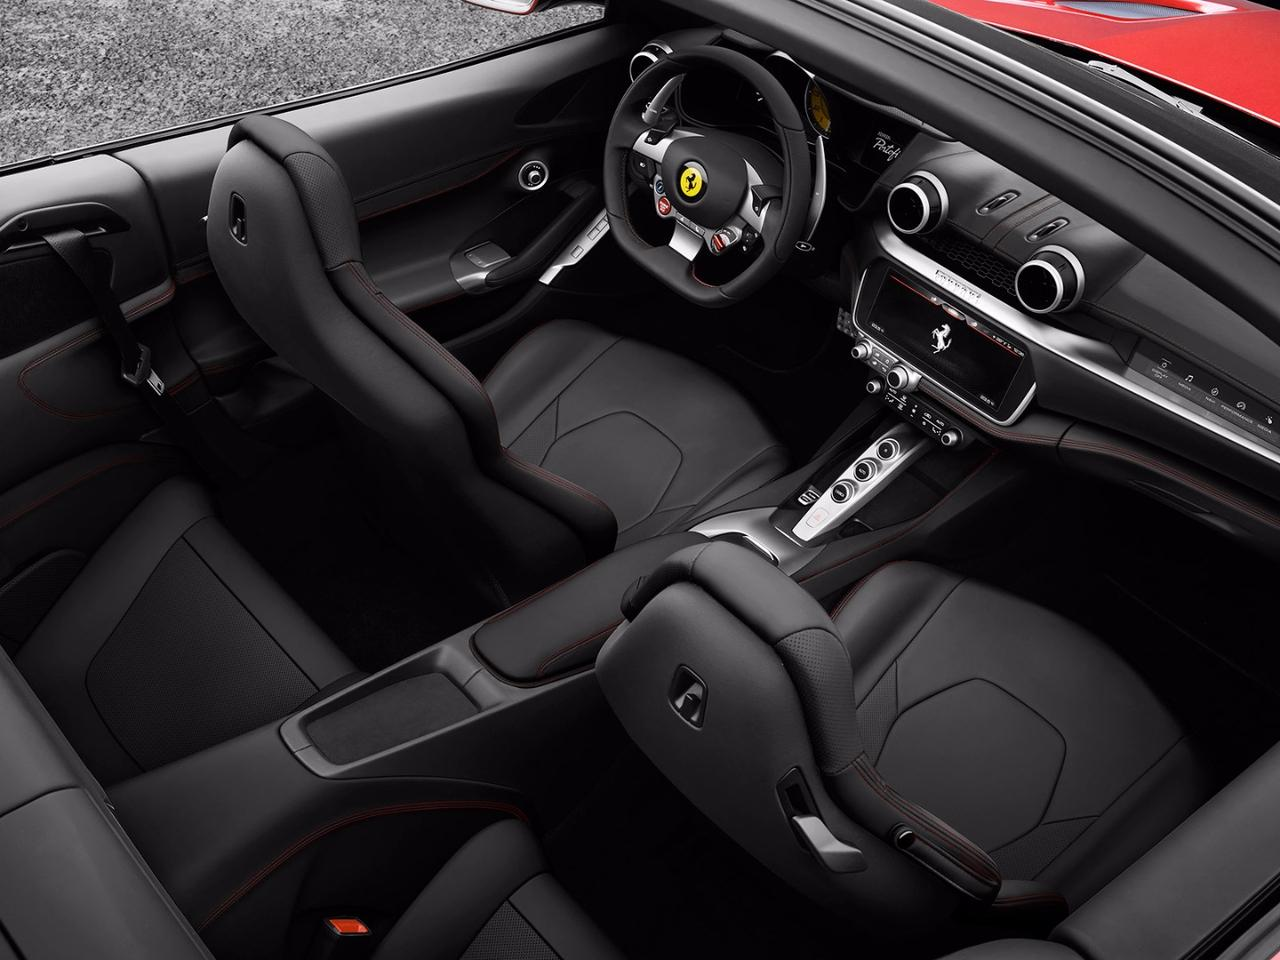 2018 Ferrari Portofino: interior features separate center and passenger touch screens